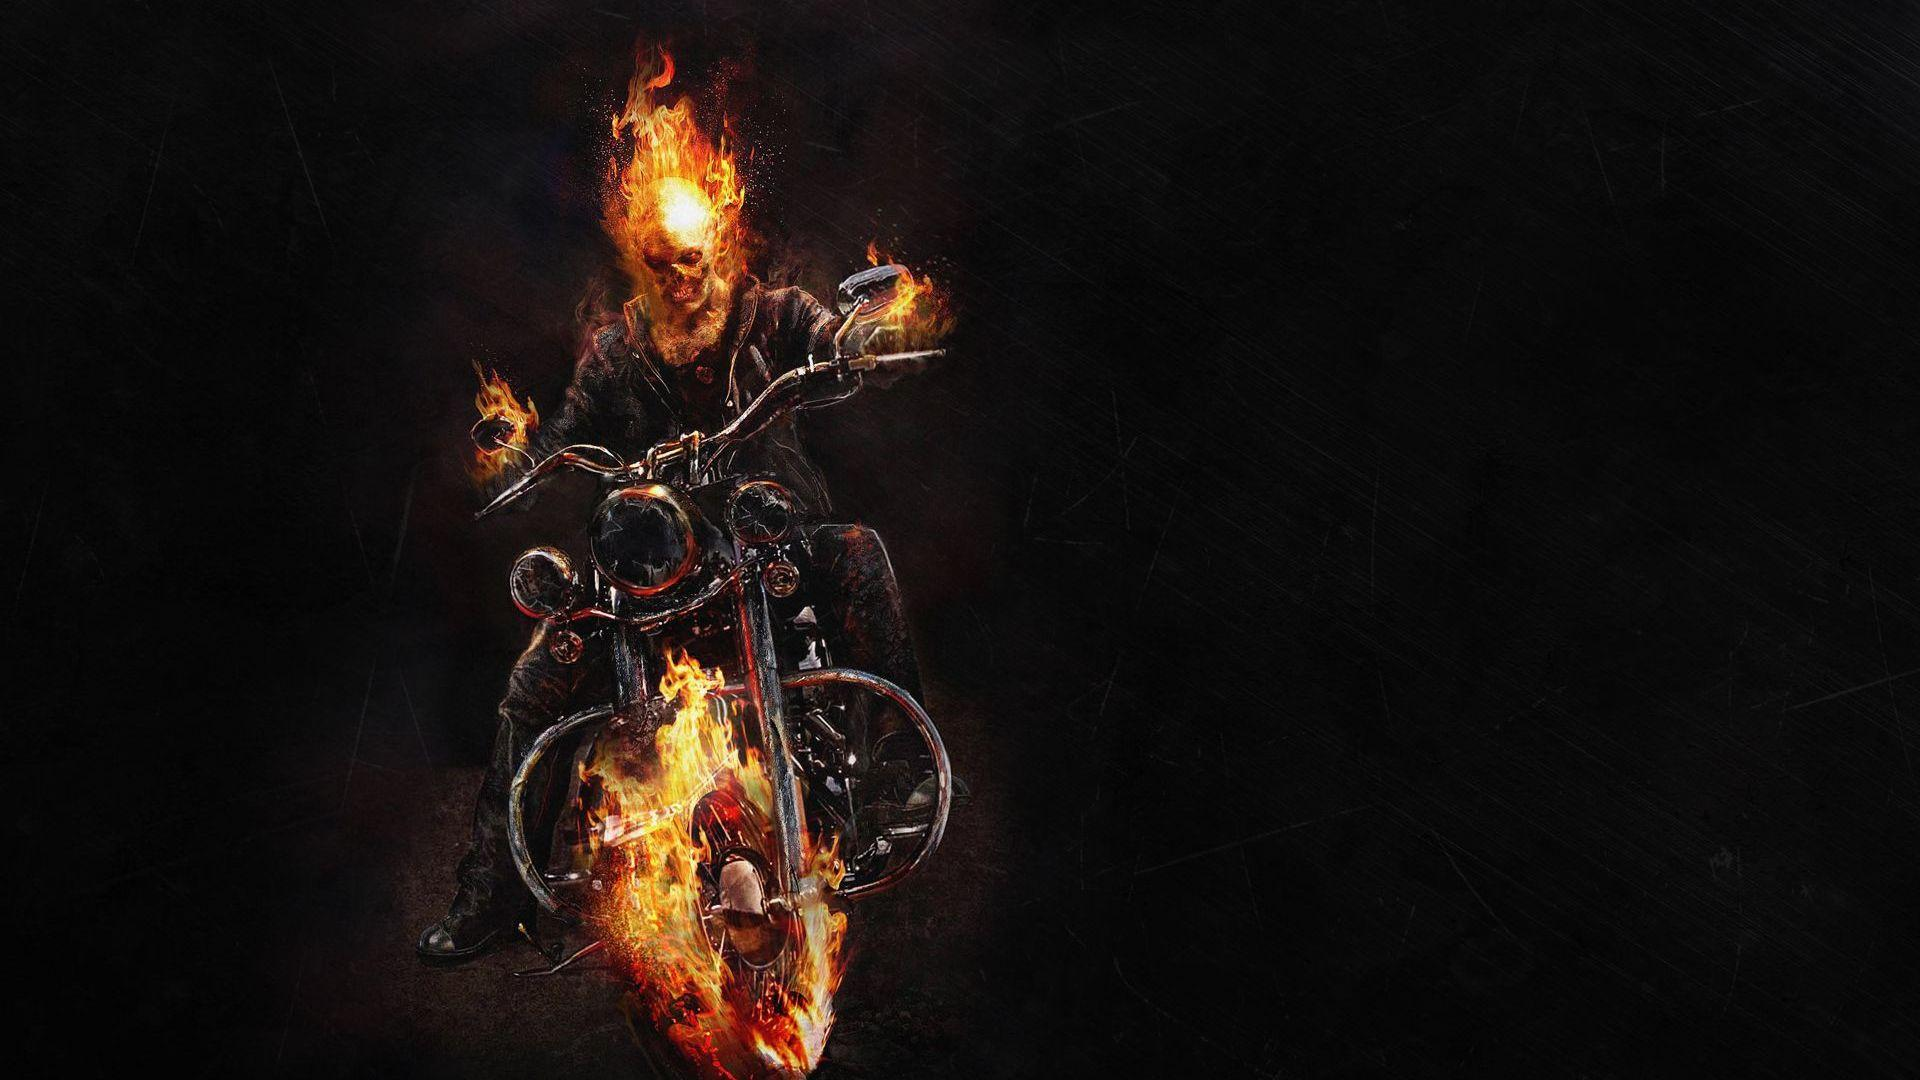 Ghost Rider Wallpapers For Background, Tess Aston 89 for mobile and